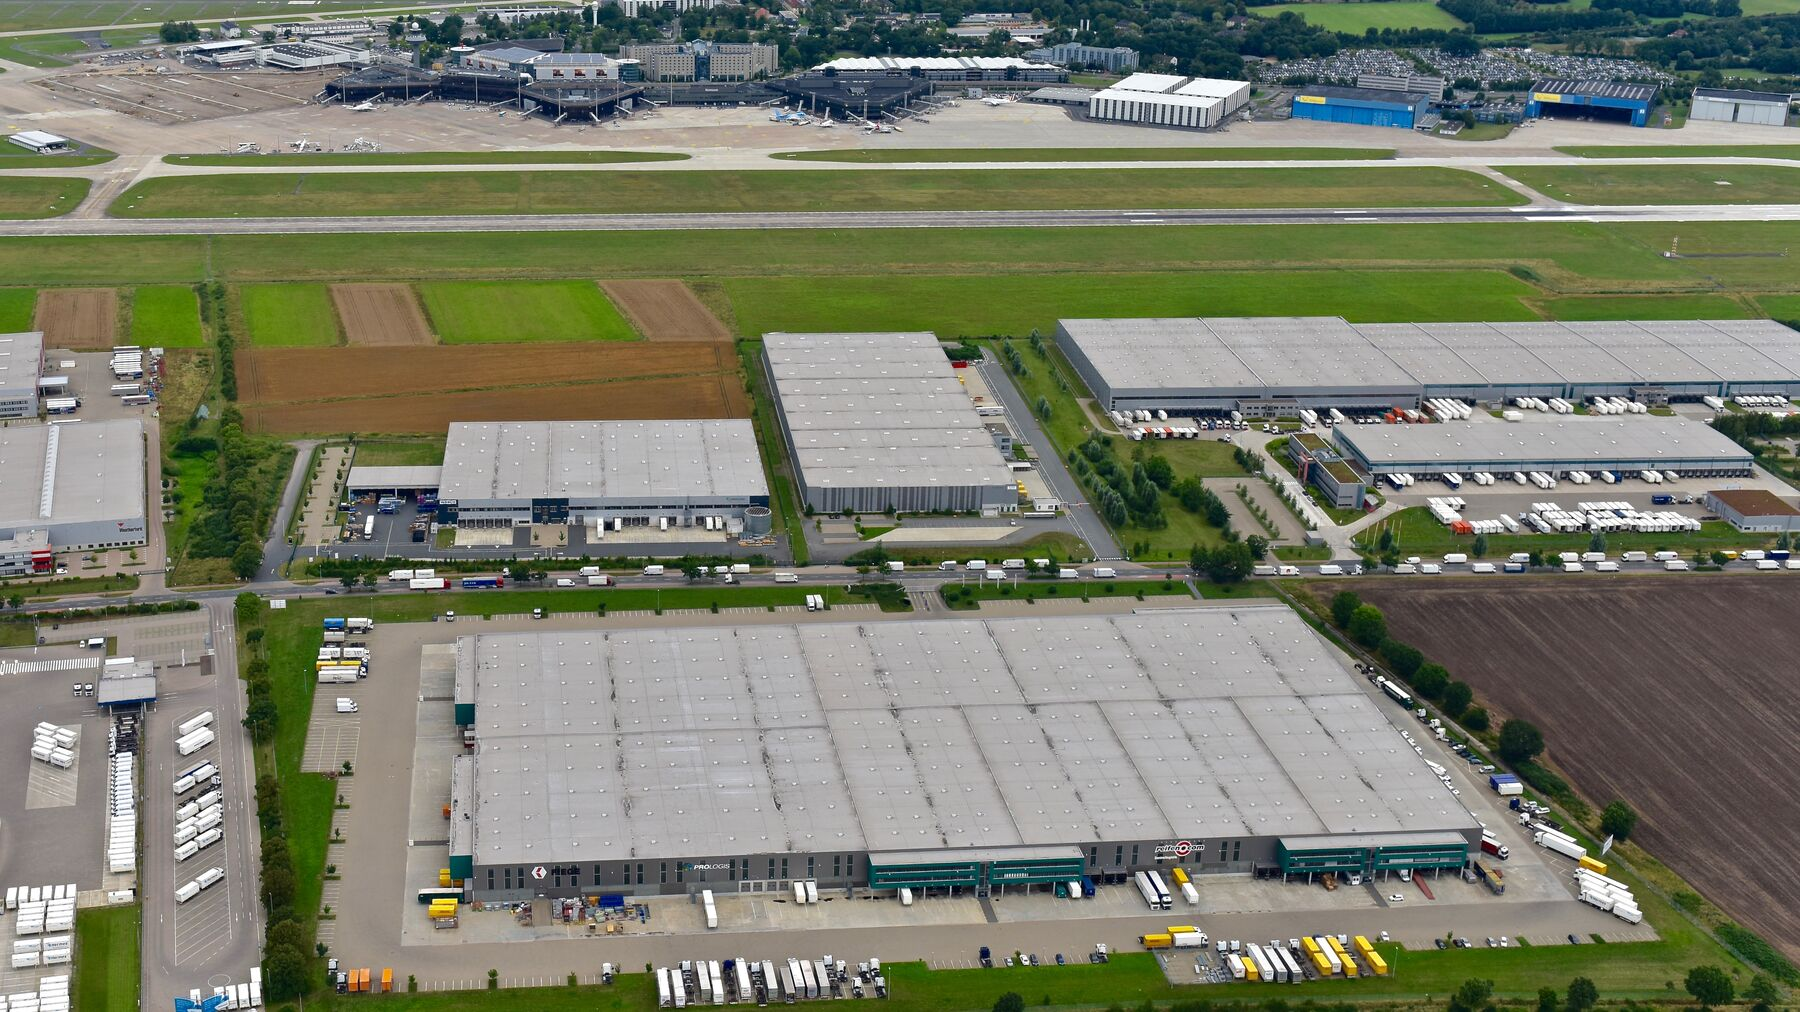 DPM-Hannover-Airport-Aerials.jpg